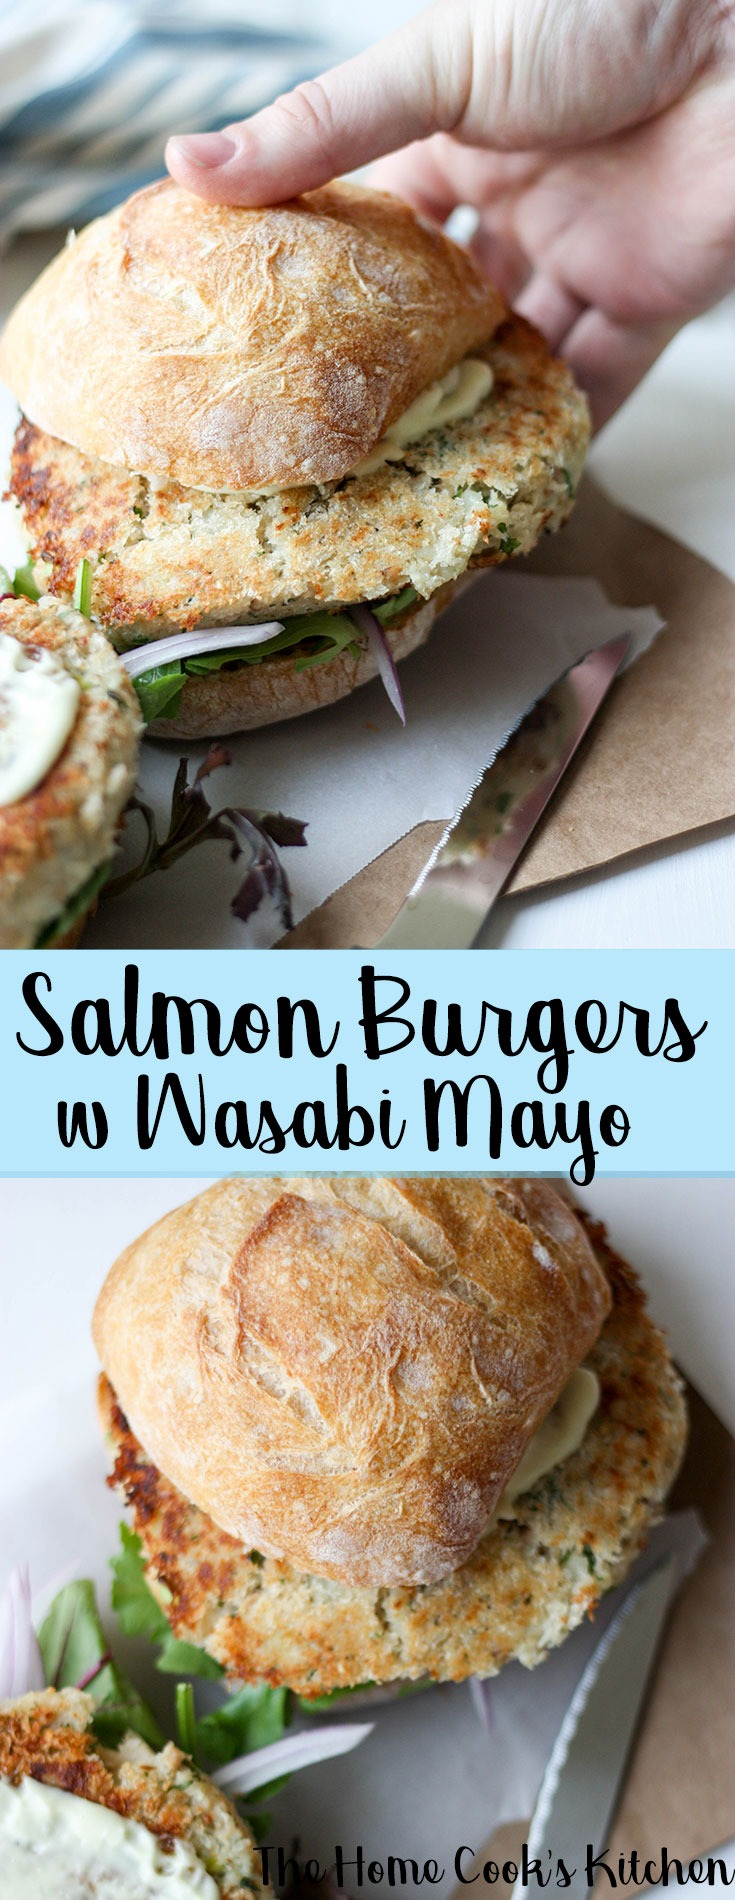 A great meal for Easter, or easy weeknight entertaining, these salmon burgers with wasabi mayo is a simple, easy and quick recipe to make! #salmonburgers #salmon #burgers